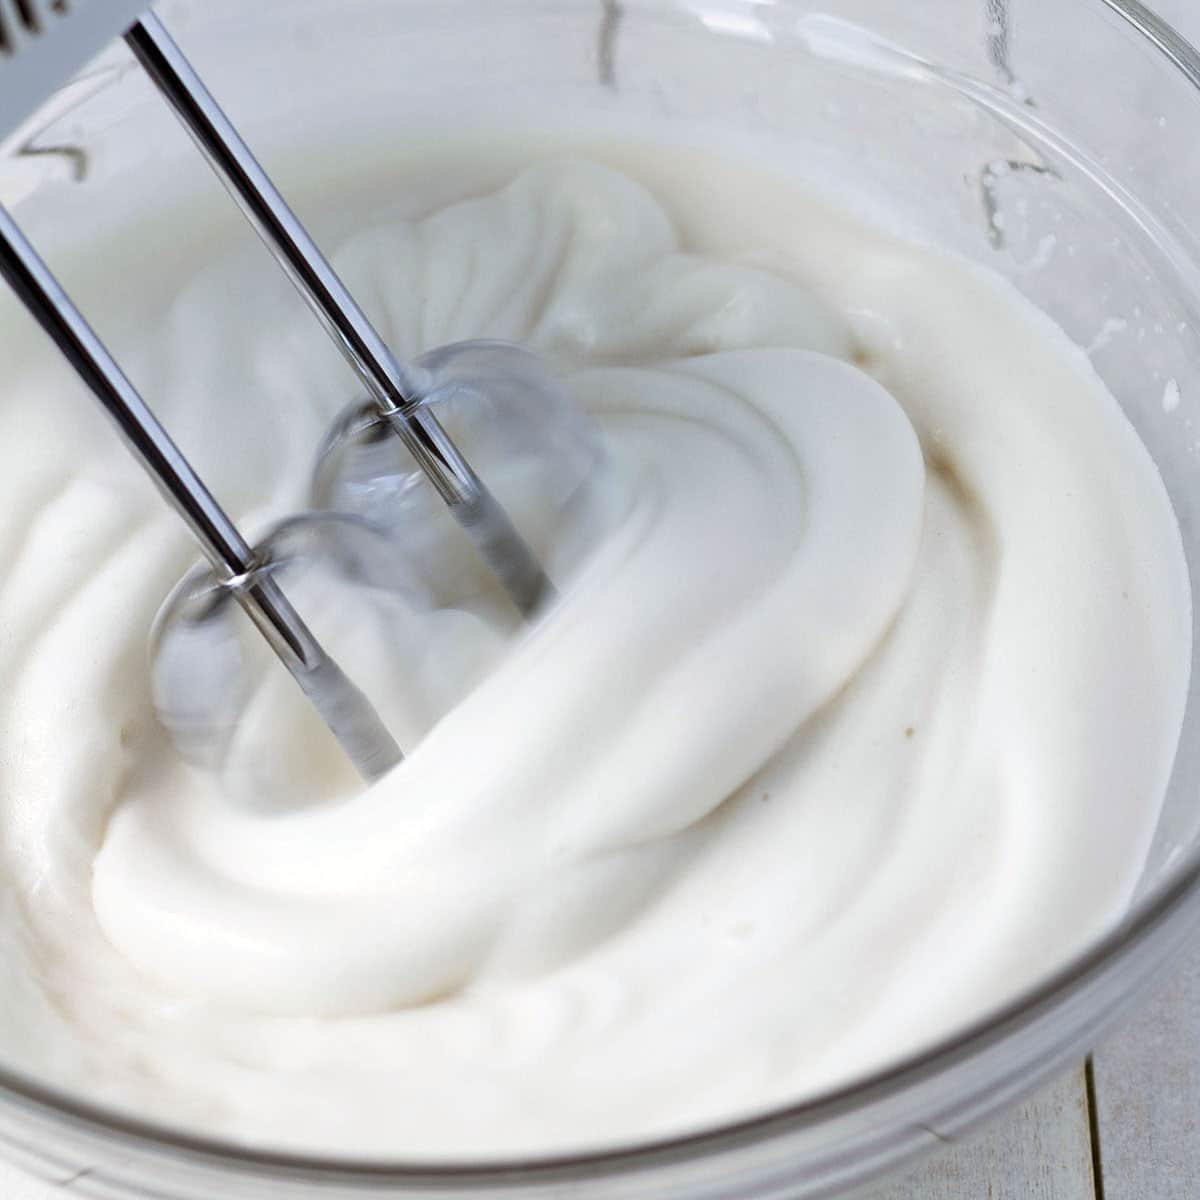 Close up image of aquafaba being whipped with a hand mixer in a glass bowl.